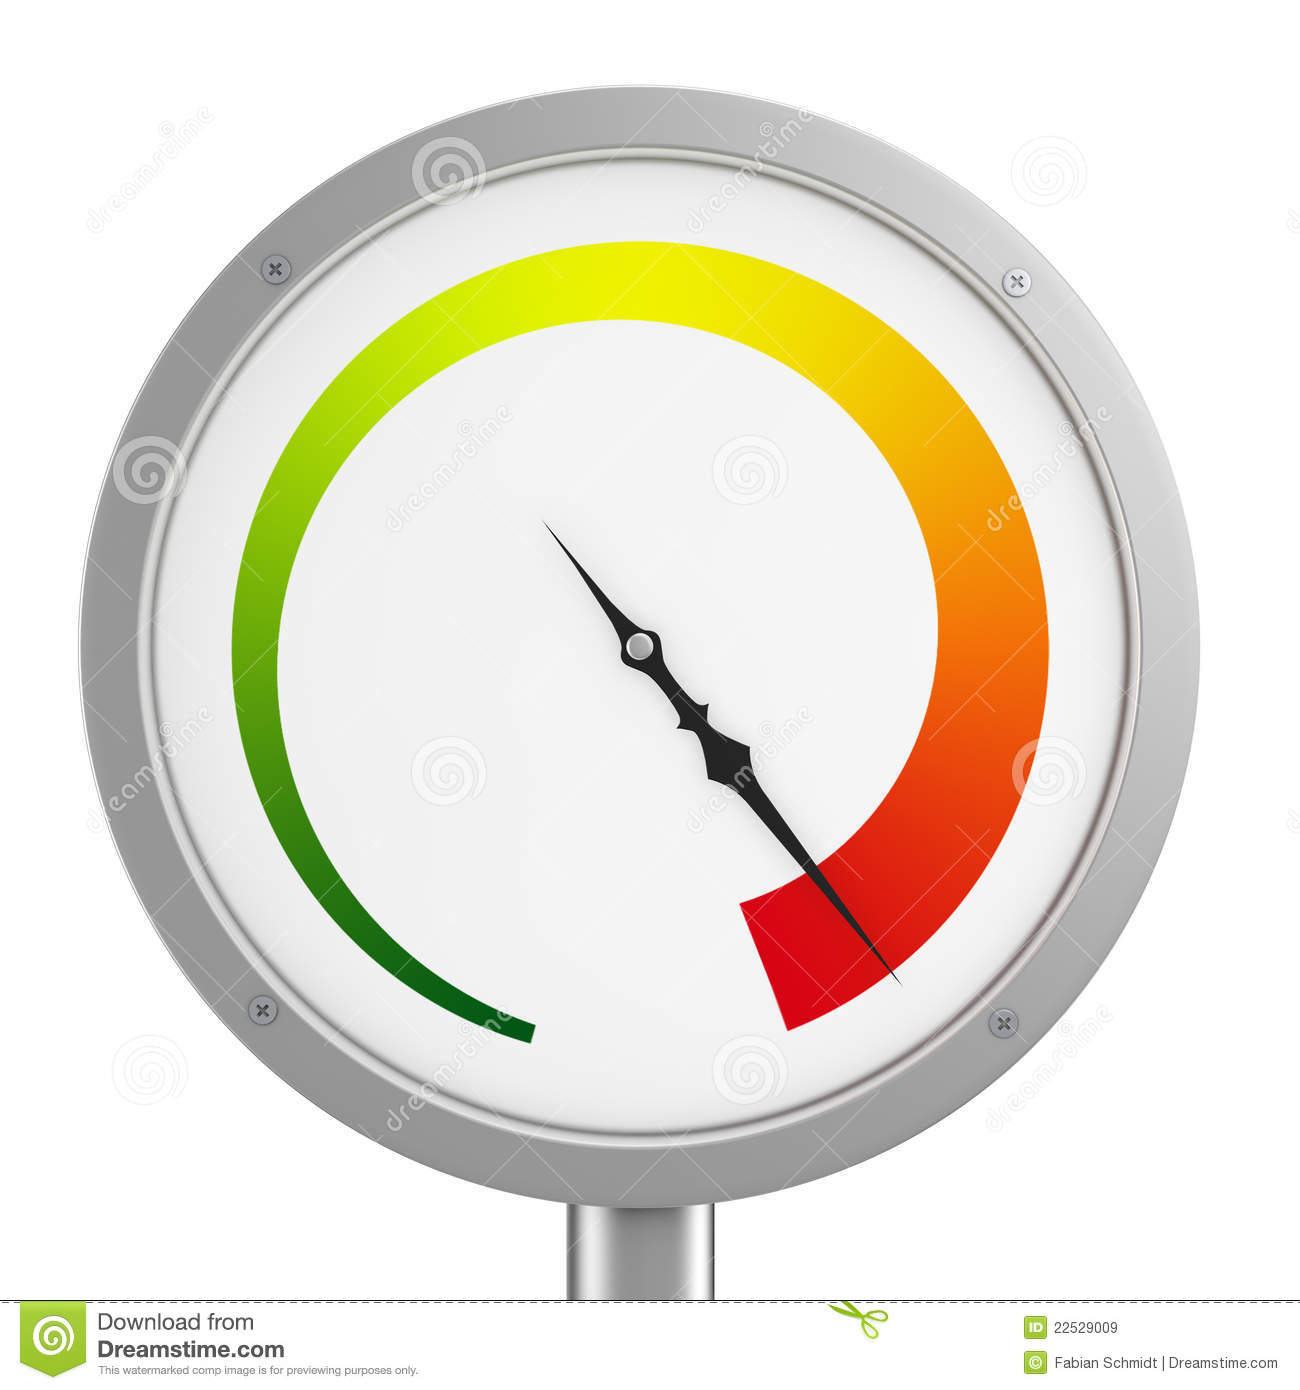 Pressure Gauge Royalty Free Stock Images - Image: 22529009